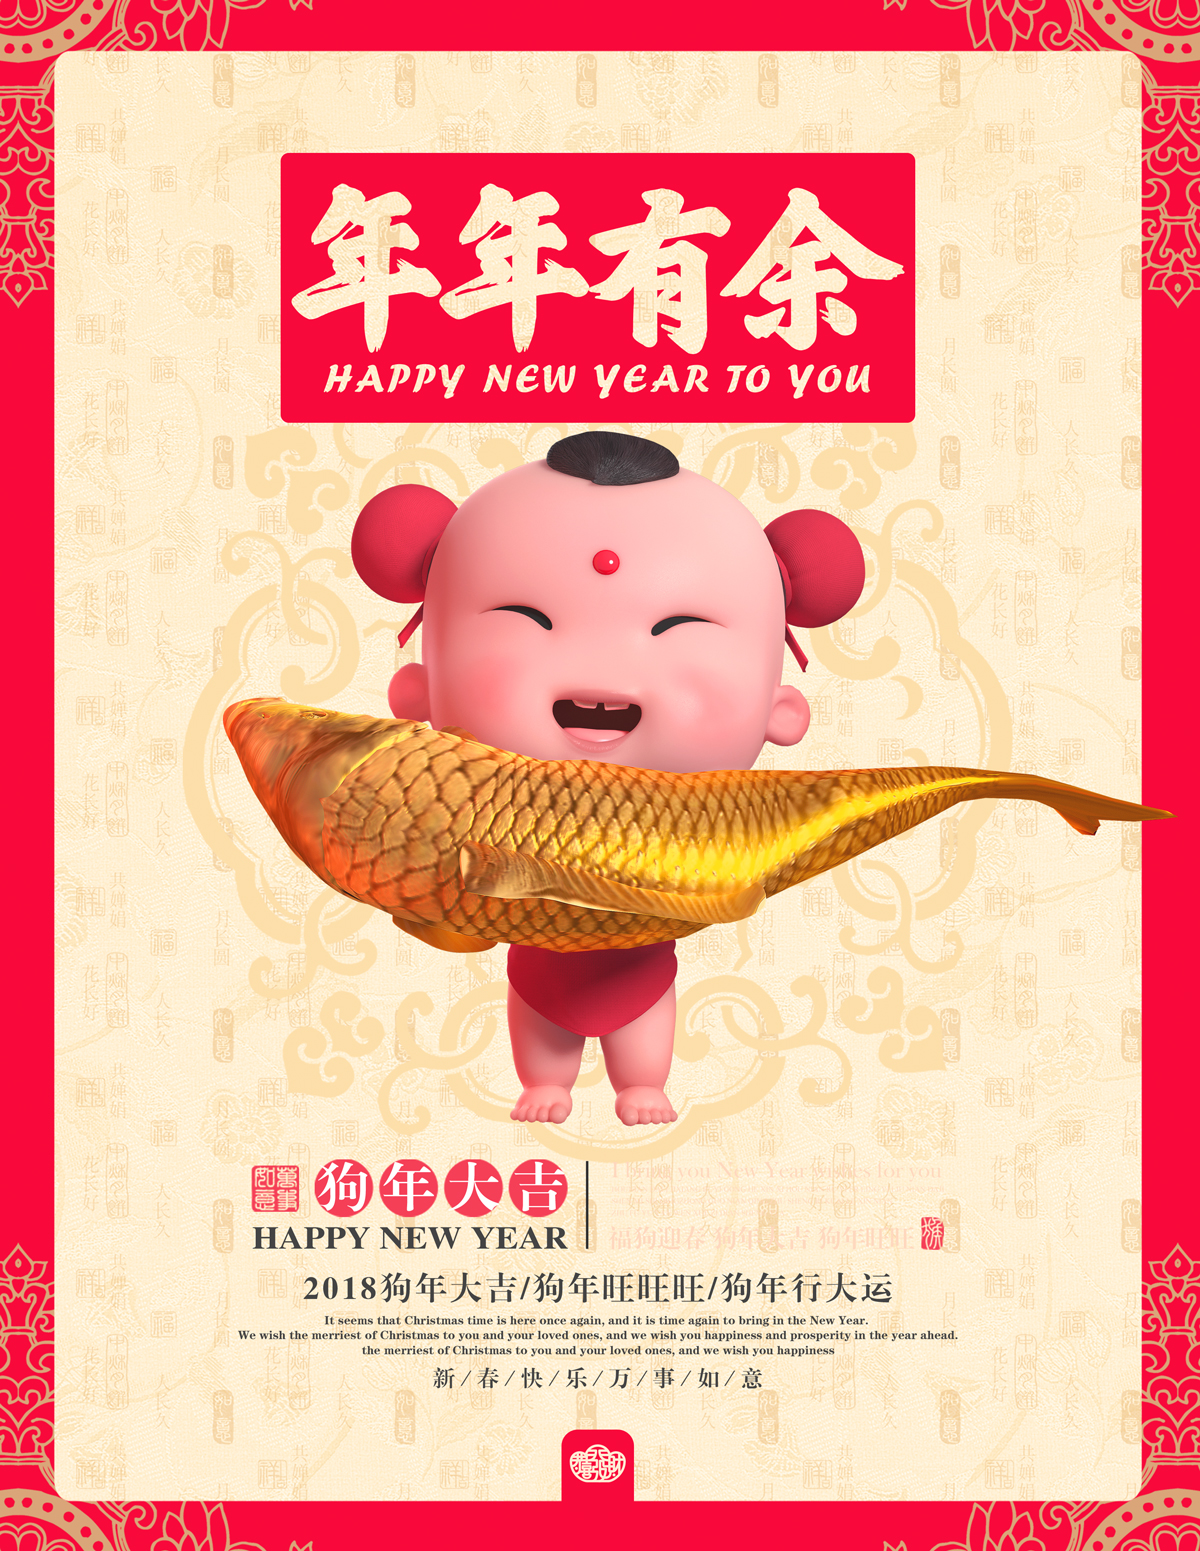 Happy new year in 2018 - Chinese New Year posters design